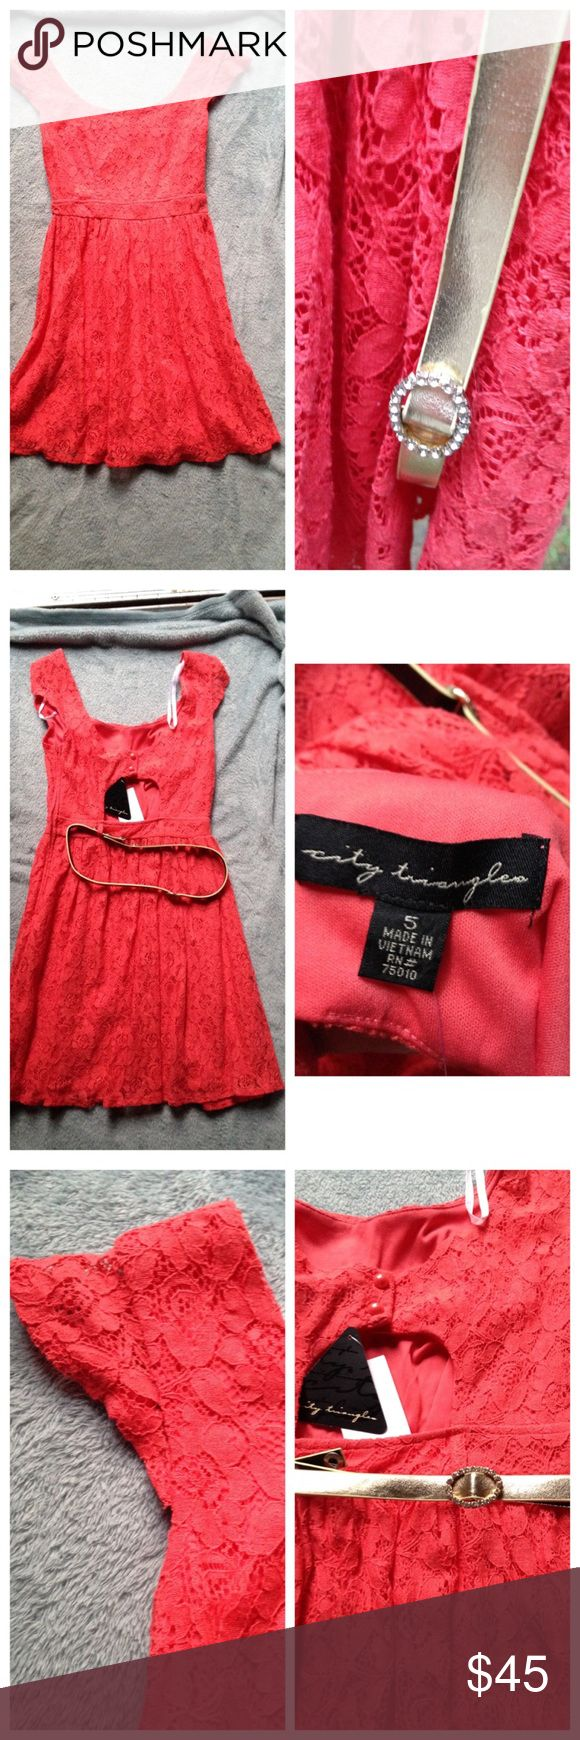 NWT coral lace dress with keyhole back size 5 NWT (not Hollister) belt is attached, sparkle part goes on front and belt is adjustable. Bought in Florida, and would have worn there, but I don't live in area where I need this many dresses. Cheerful pop of color! No flaws, non-smoking home. Hollister Dresses Mini